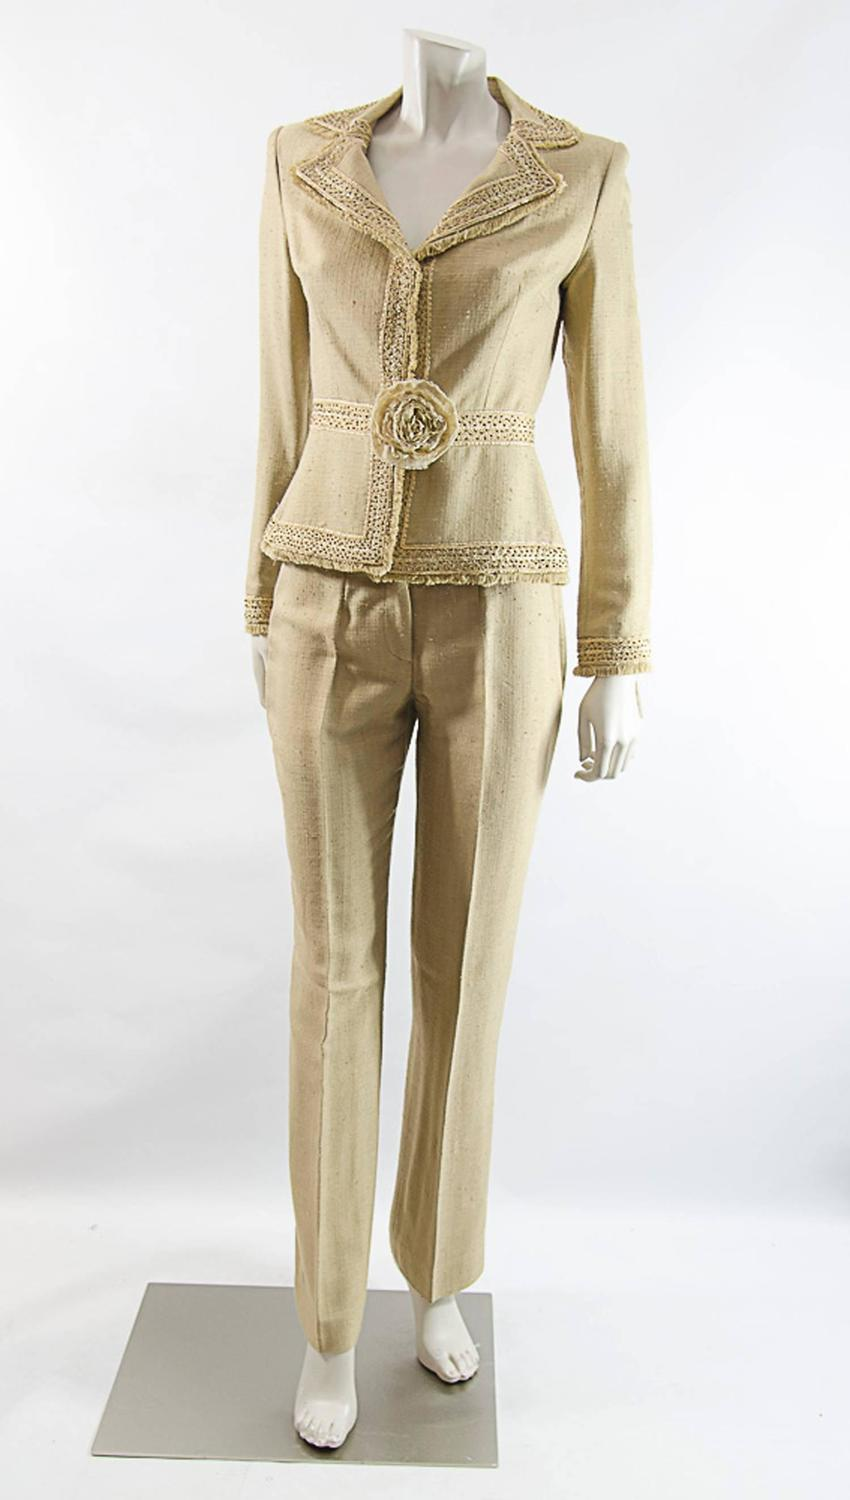 Look chic and fabulous in this R&M Richards pant suit. The fashionable suit features a jacket with shear, 3/4 length sleeves, elegant slacks, and a beautiful blouse with a beaded neckline.